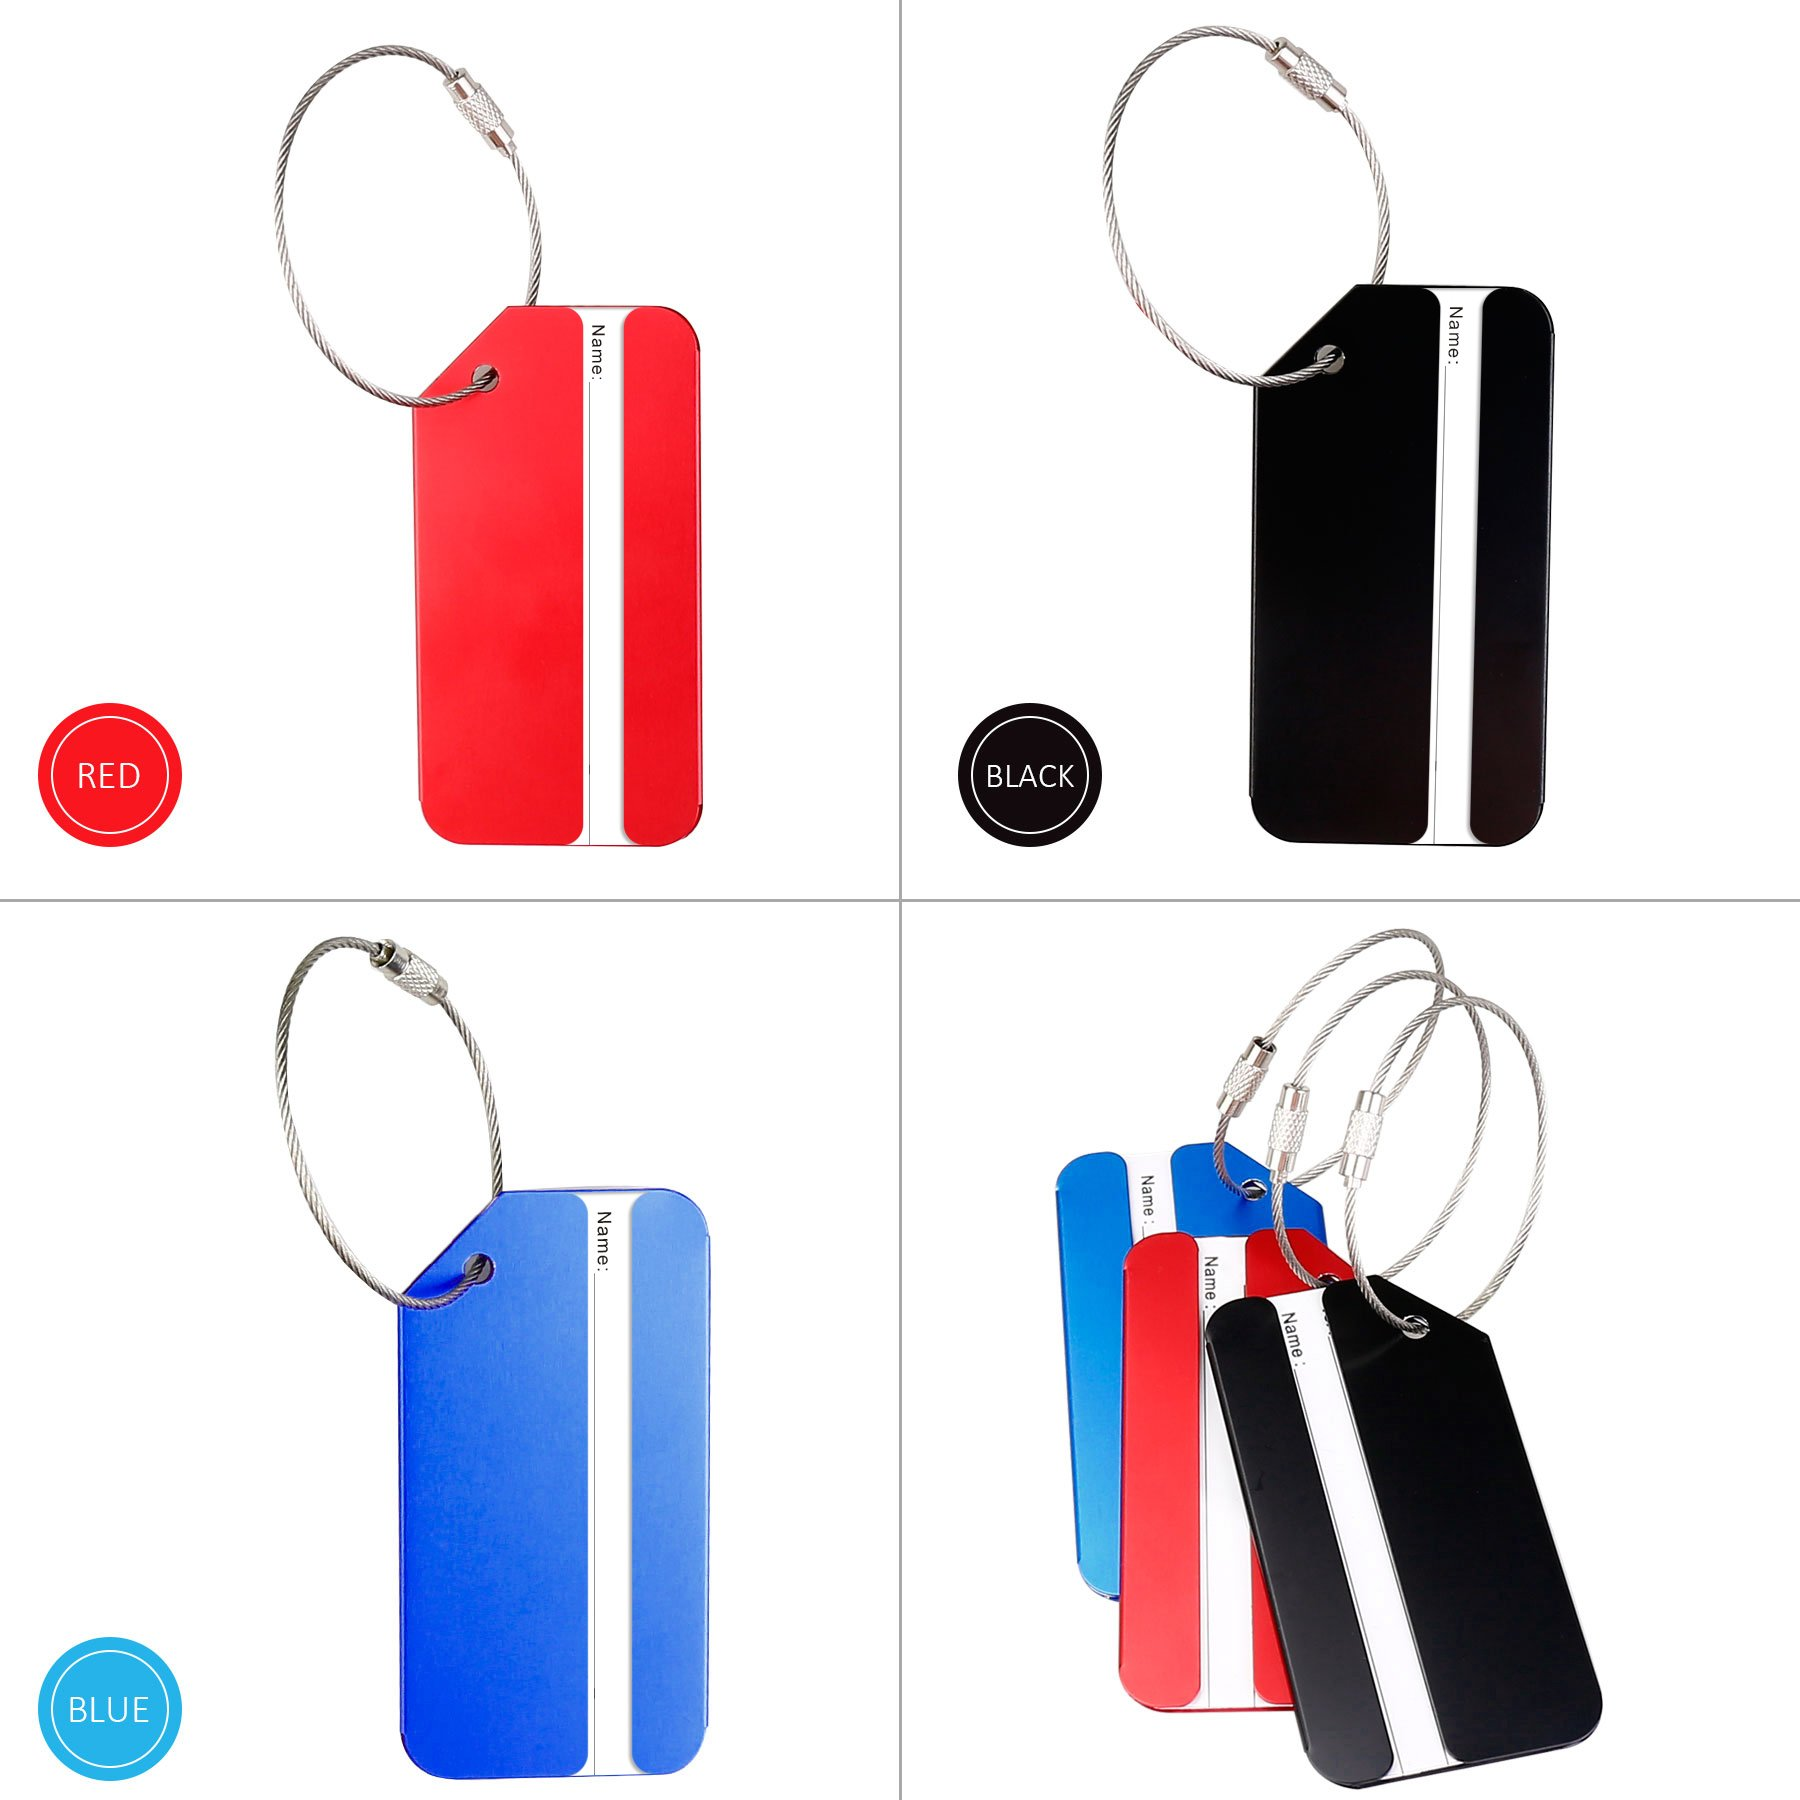 Luggage Tags 6 Pack Travel Bag Tags Women Men Aluminum Suitcase Tag with Stainless Steel Loop (2 black, 2 red, 2 blue) by HONITURE (Image #2)